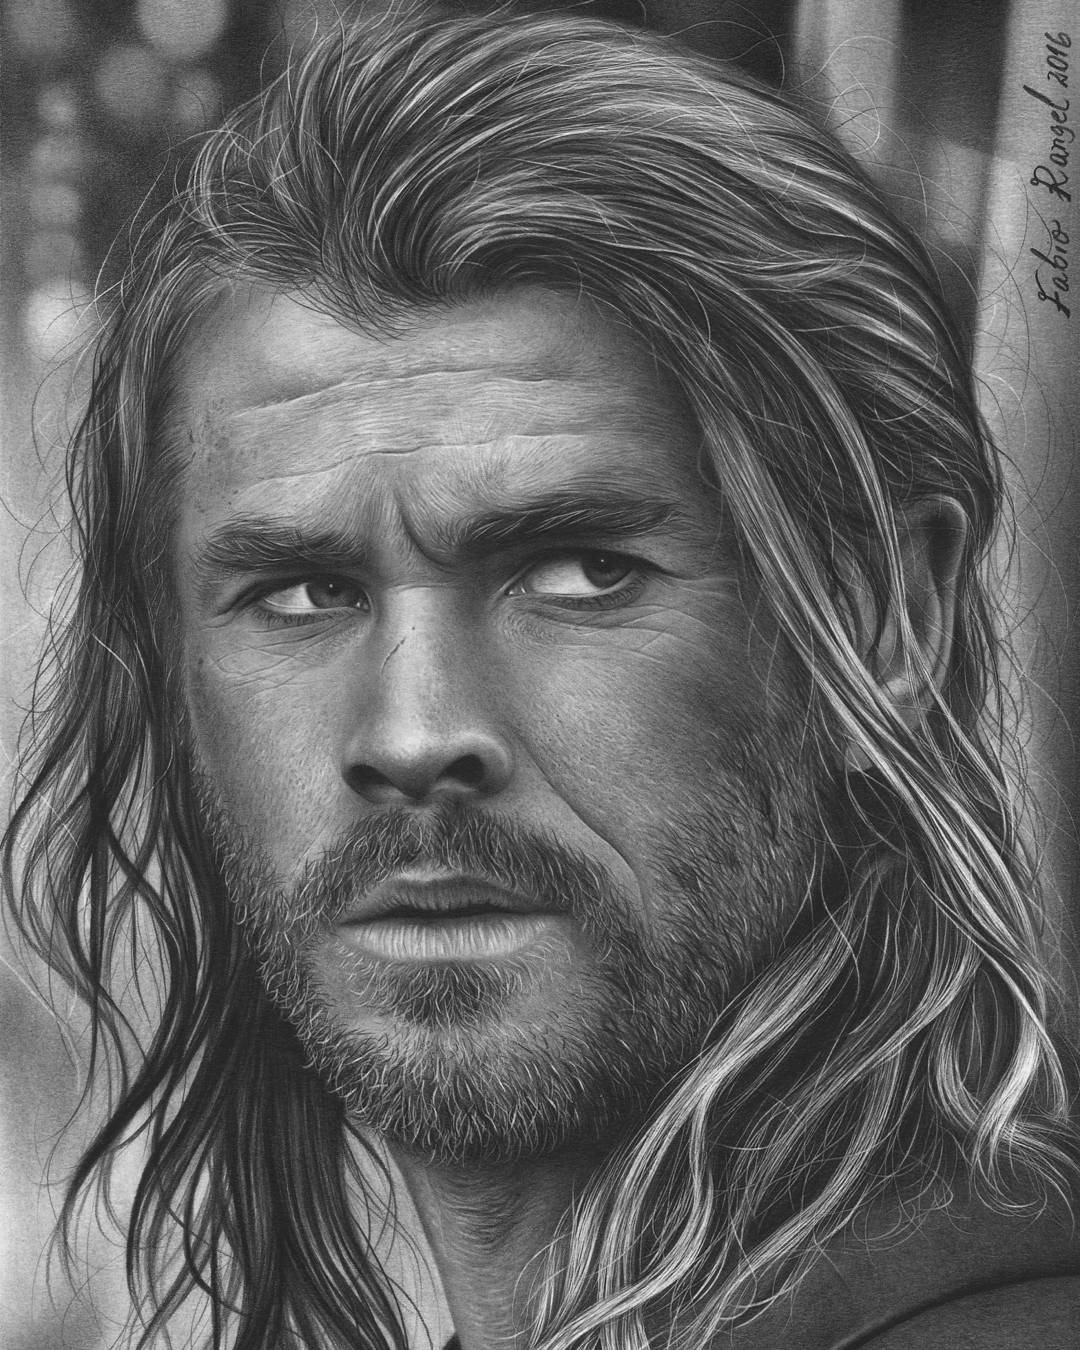 08-Thor-Chris Hemsworth-Fabio-Rangel-Drawings-of-Protagonists-from-TV-and-Movies-www-designstack-co